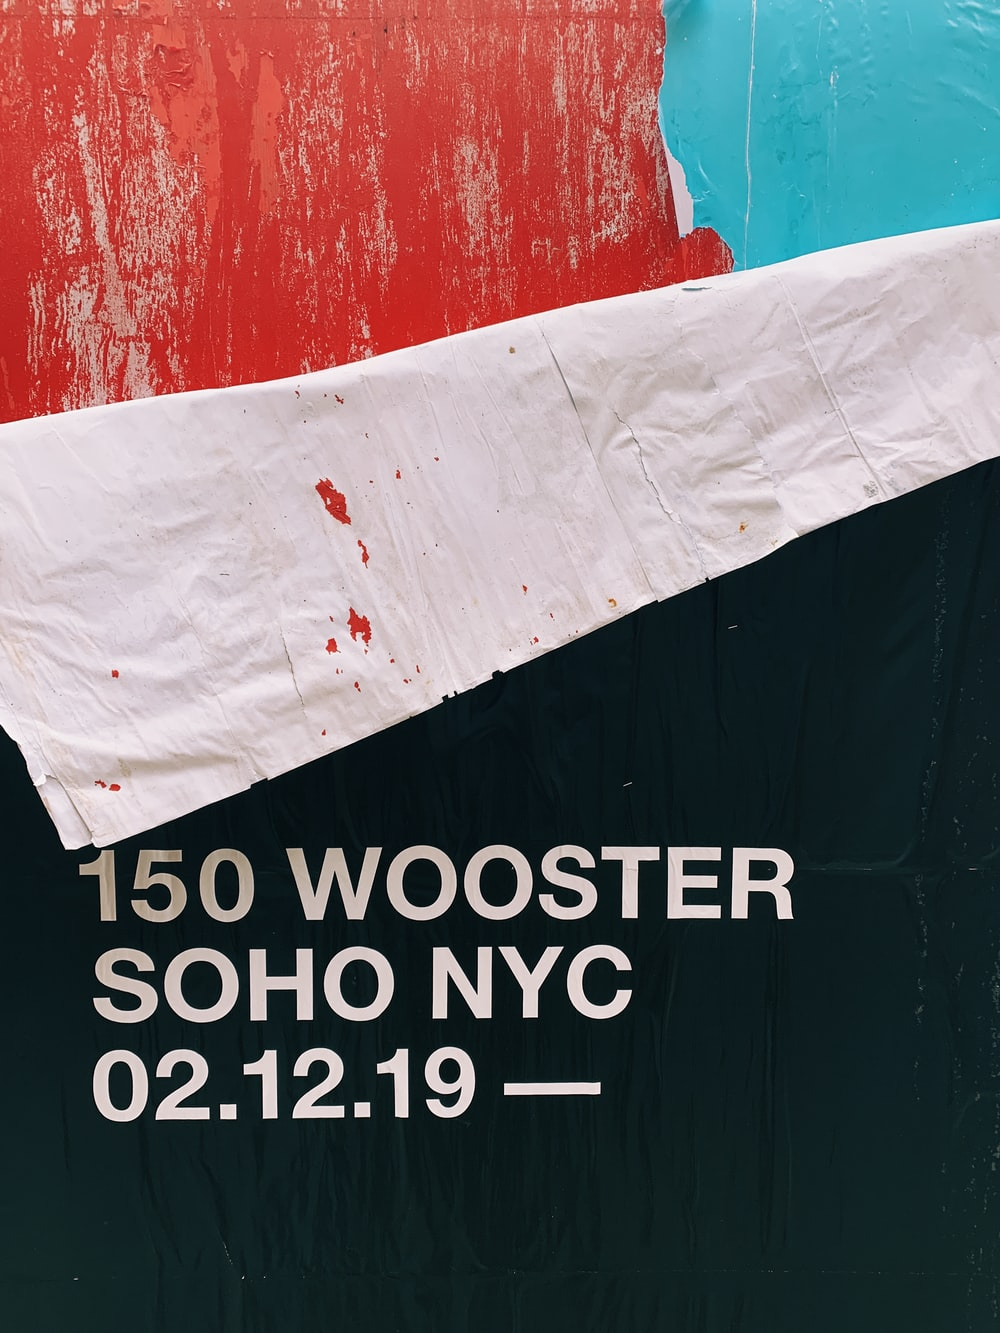 150 Wooster Soho NYC text